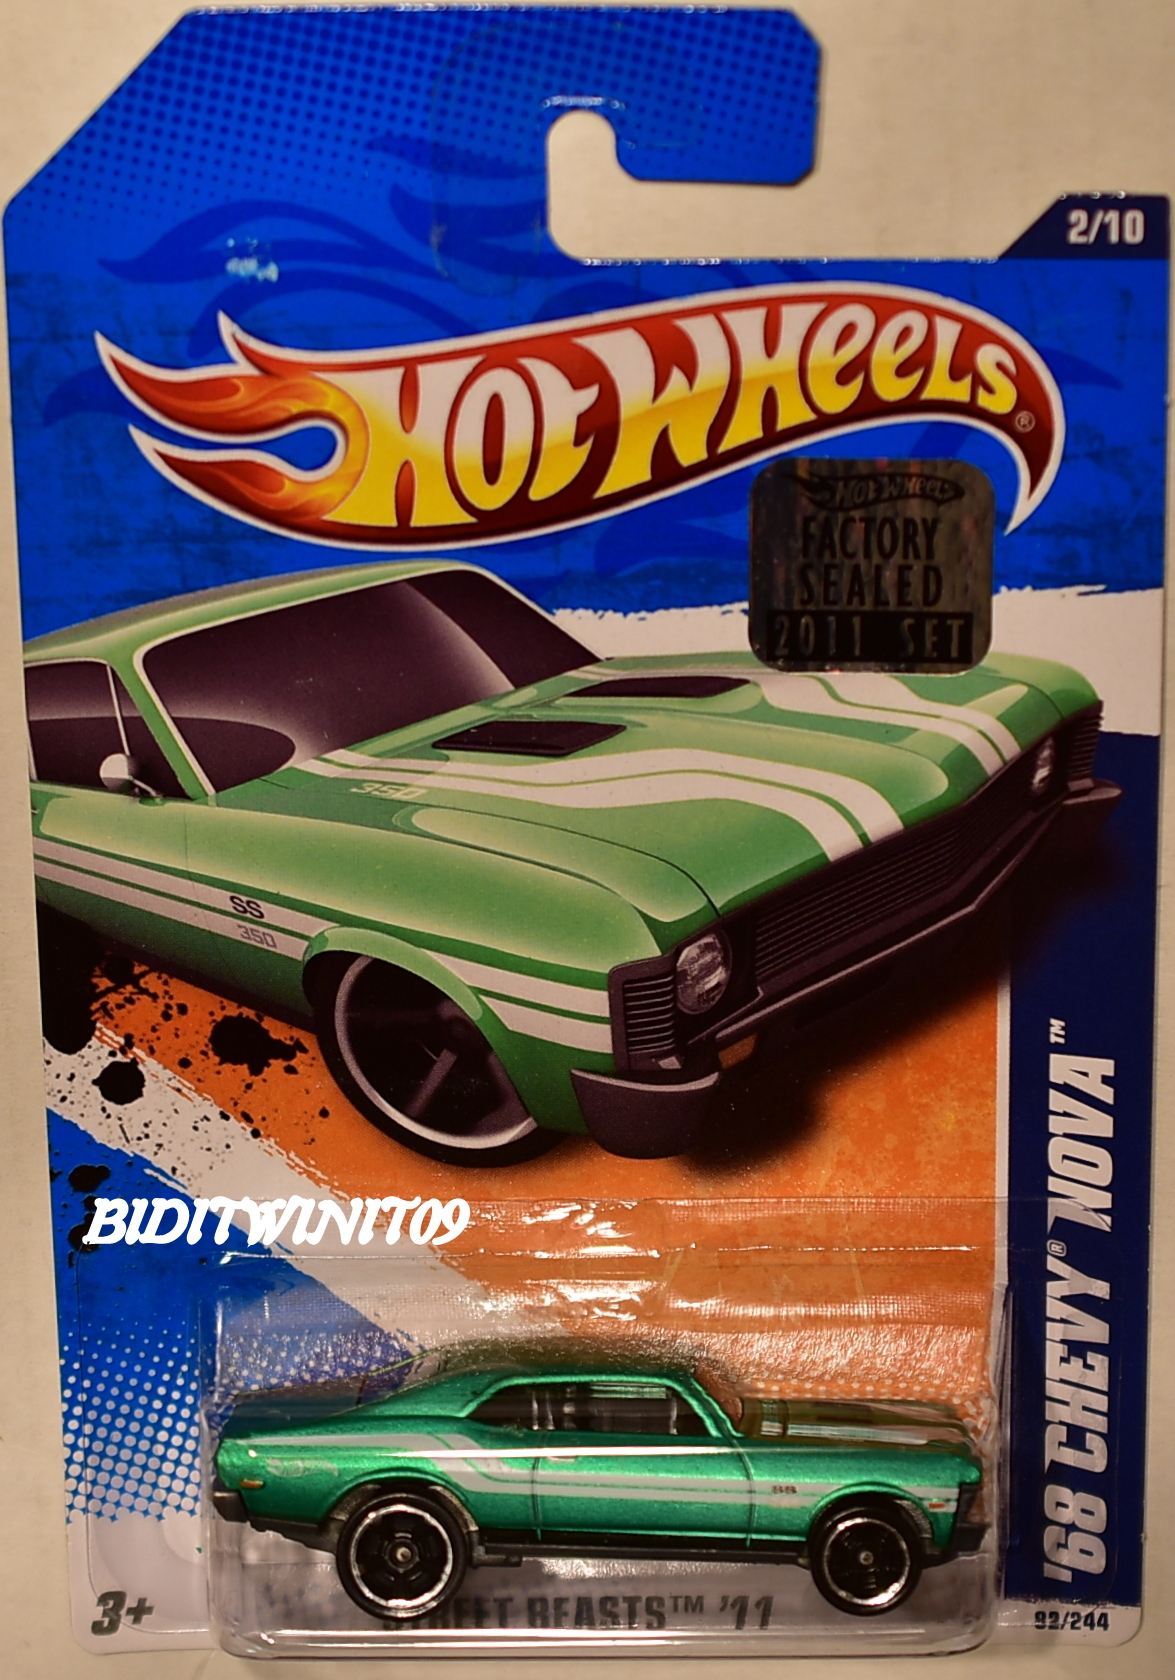 HOT WHEELS 2011 STREET BEASTS '68 CHEVY NOVA #2/10 GREEN FACTORY SEALED